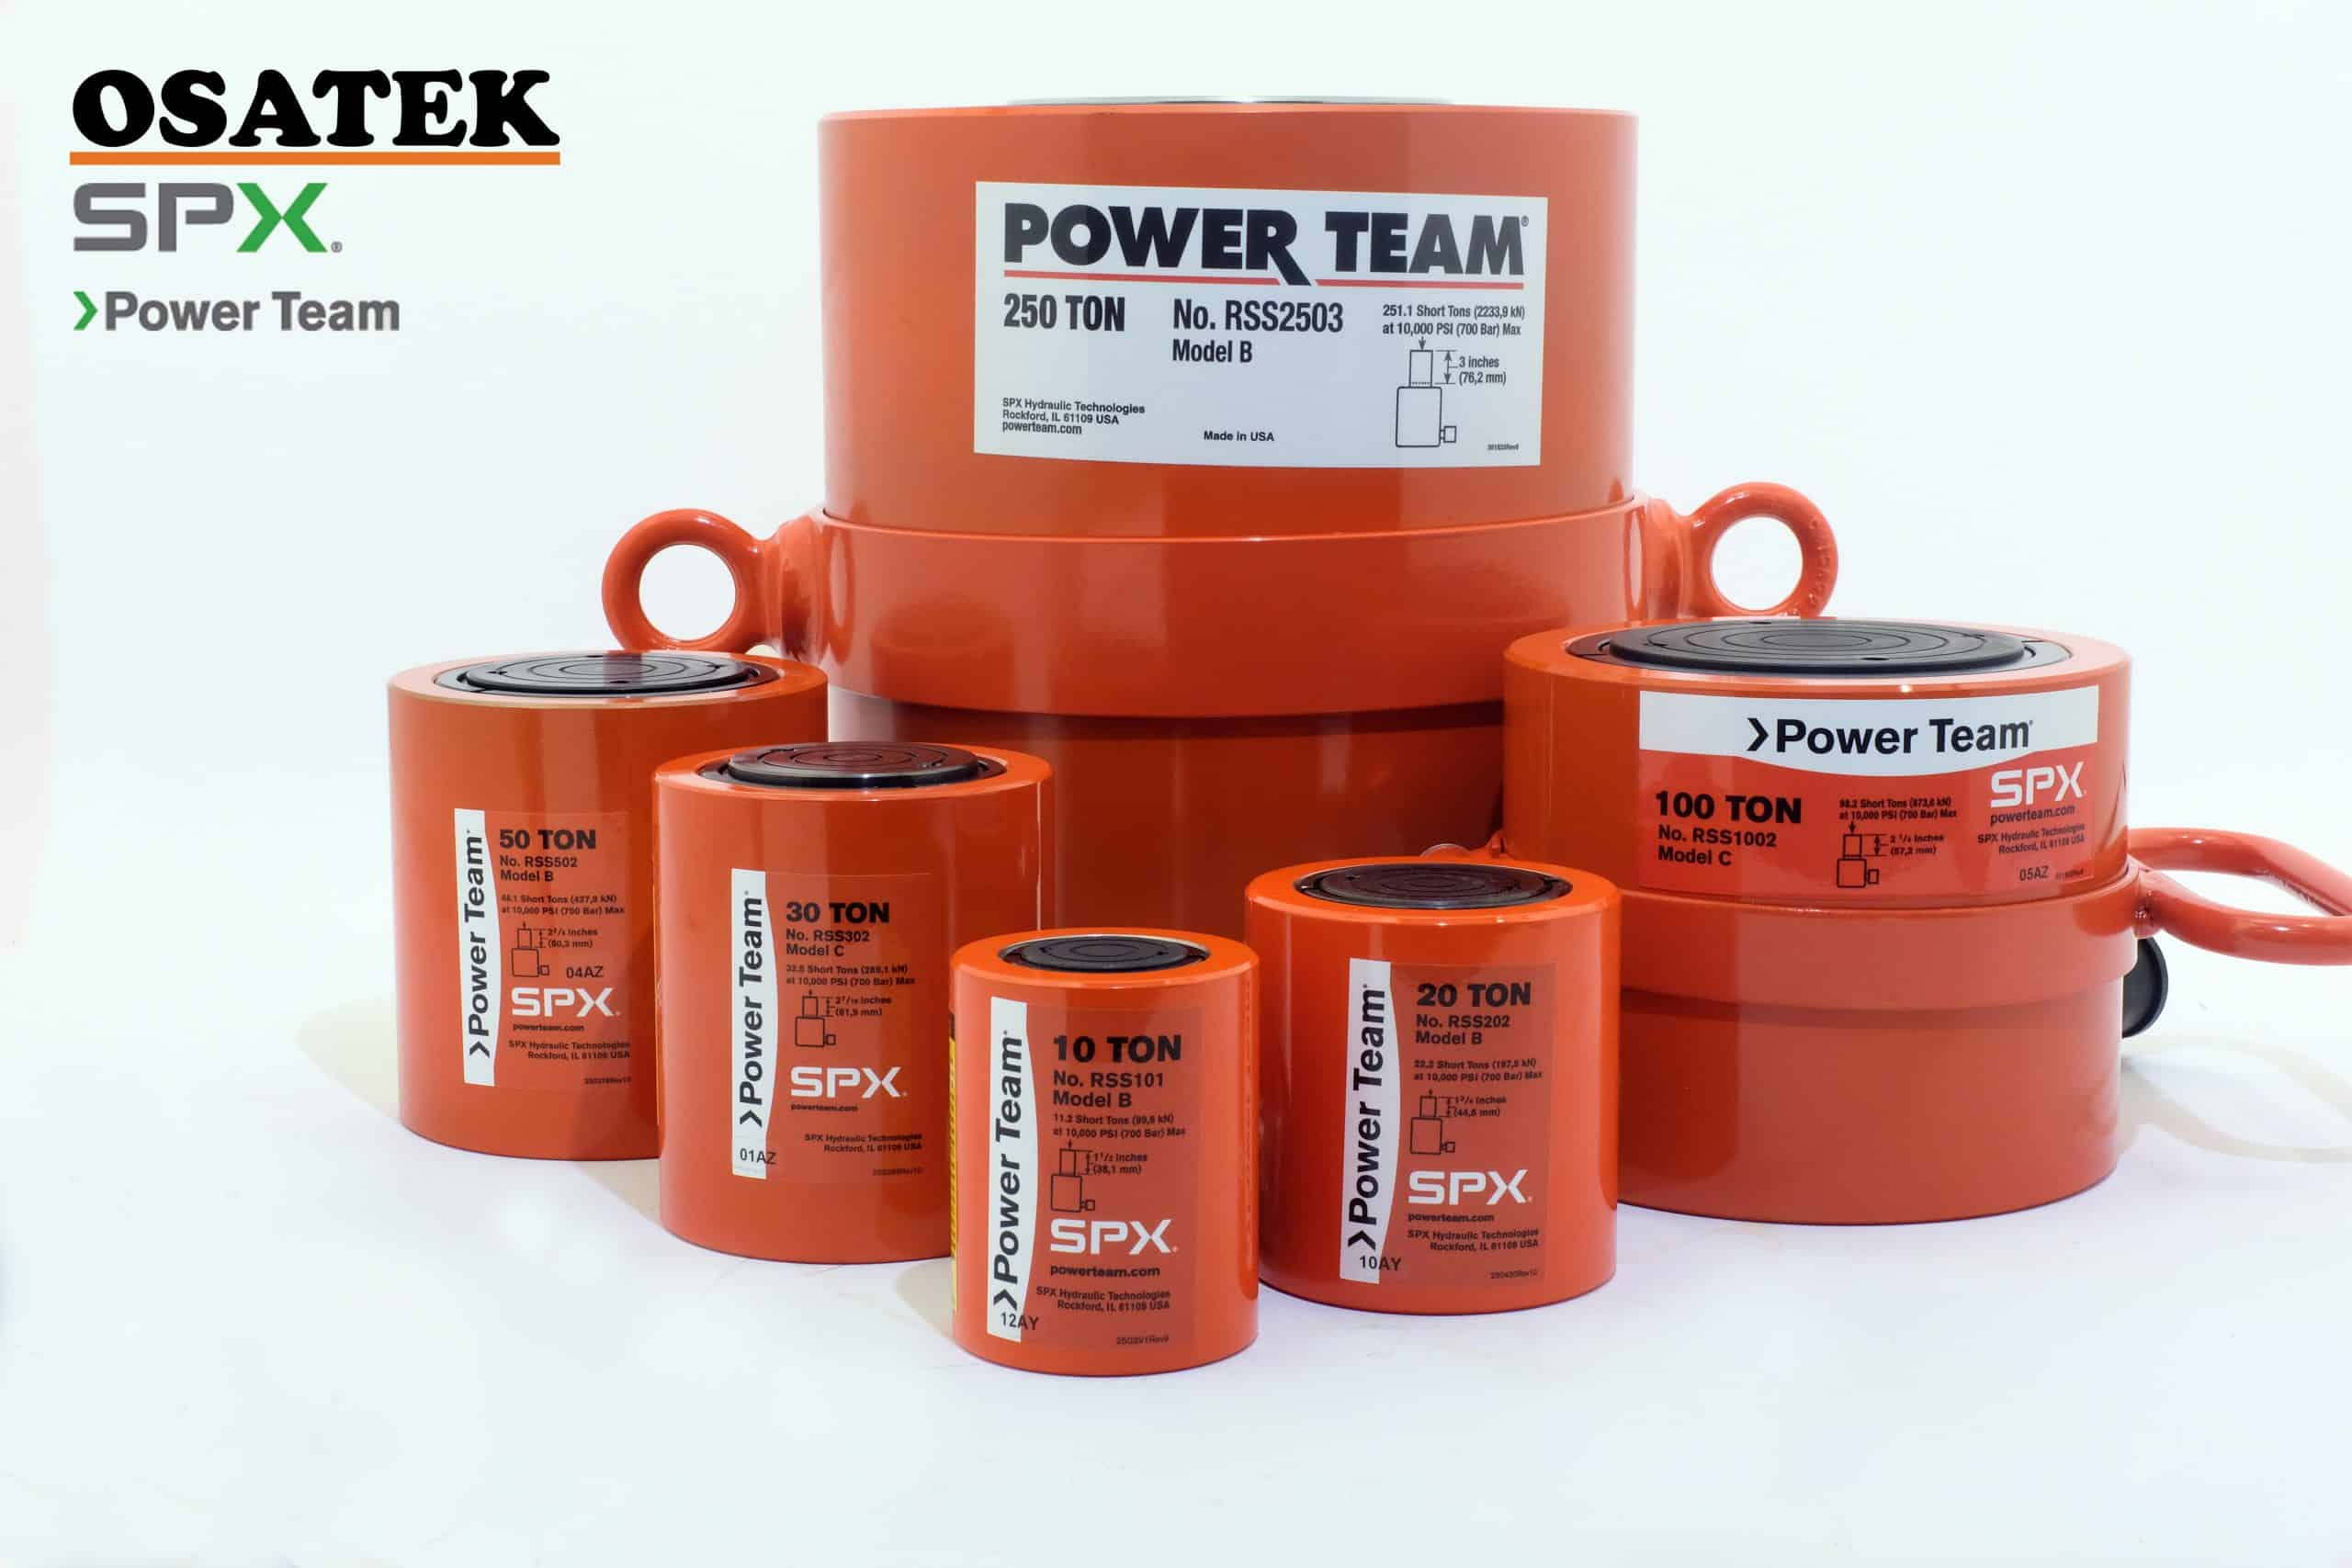 Power Team RSS cylinders